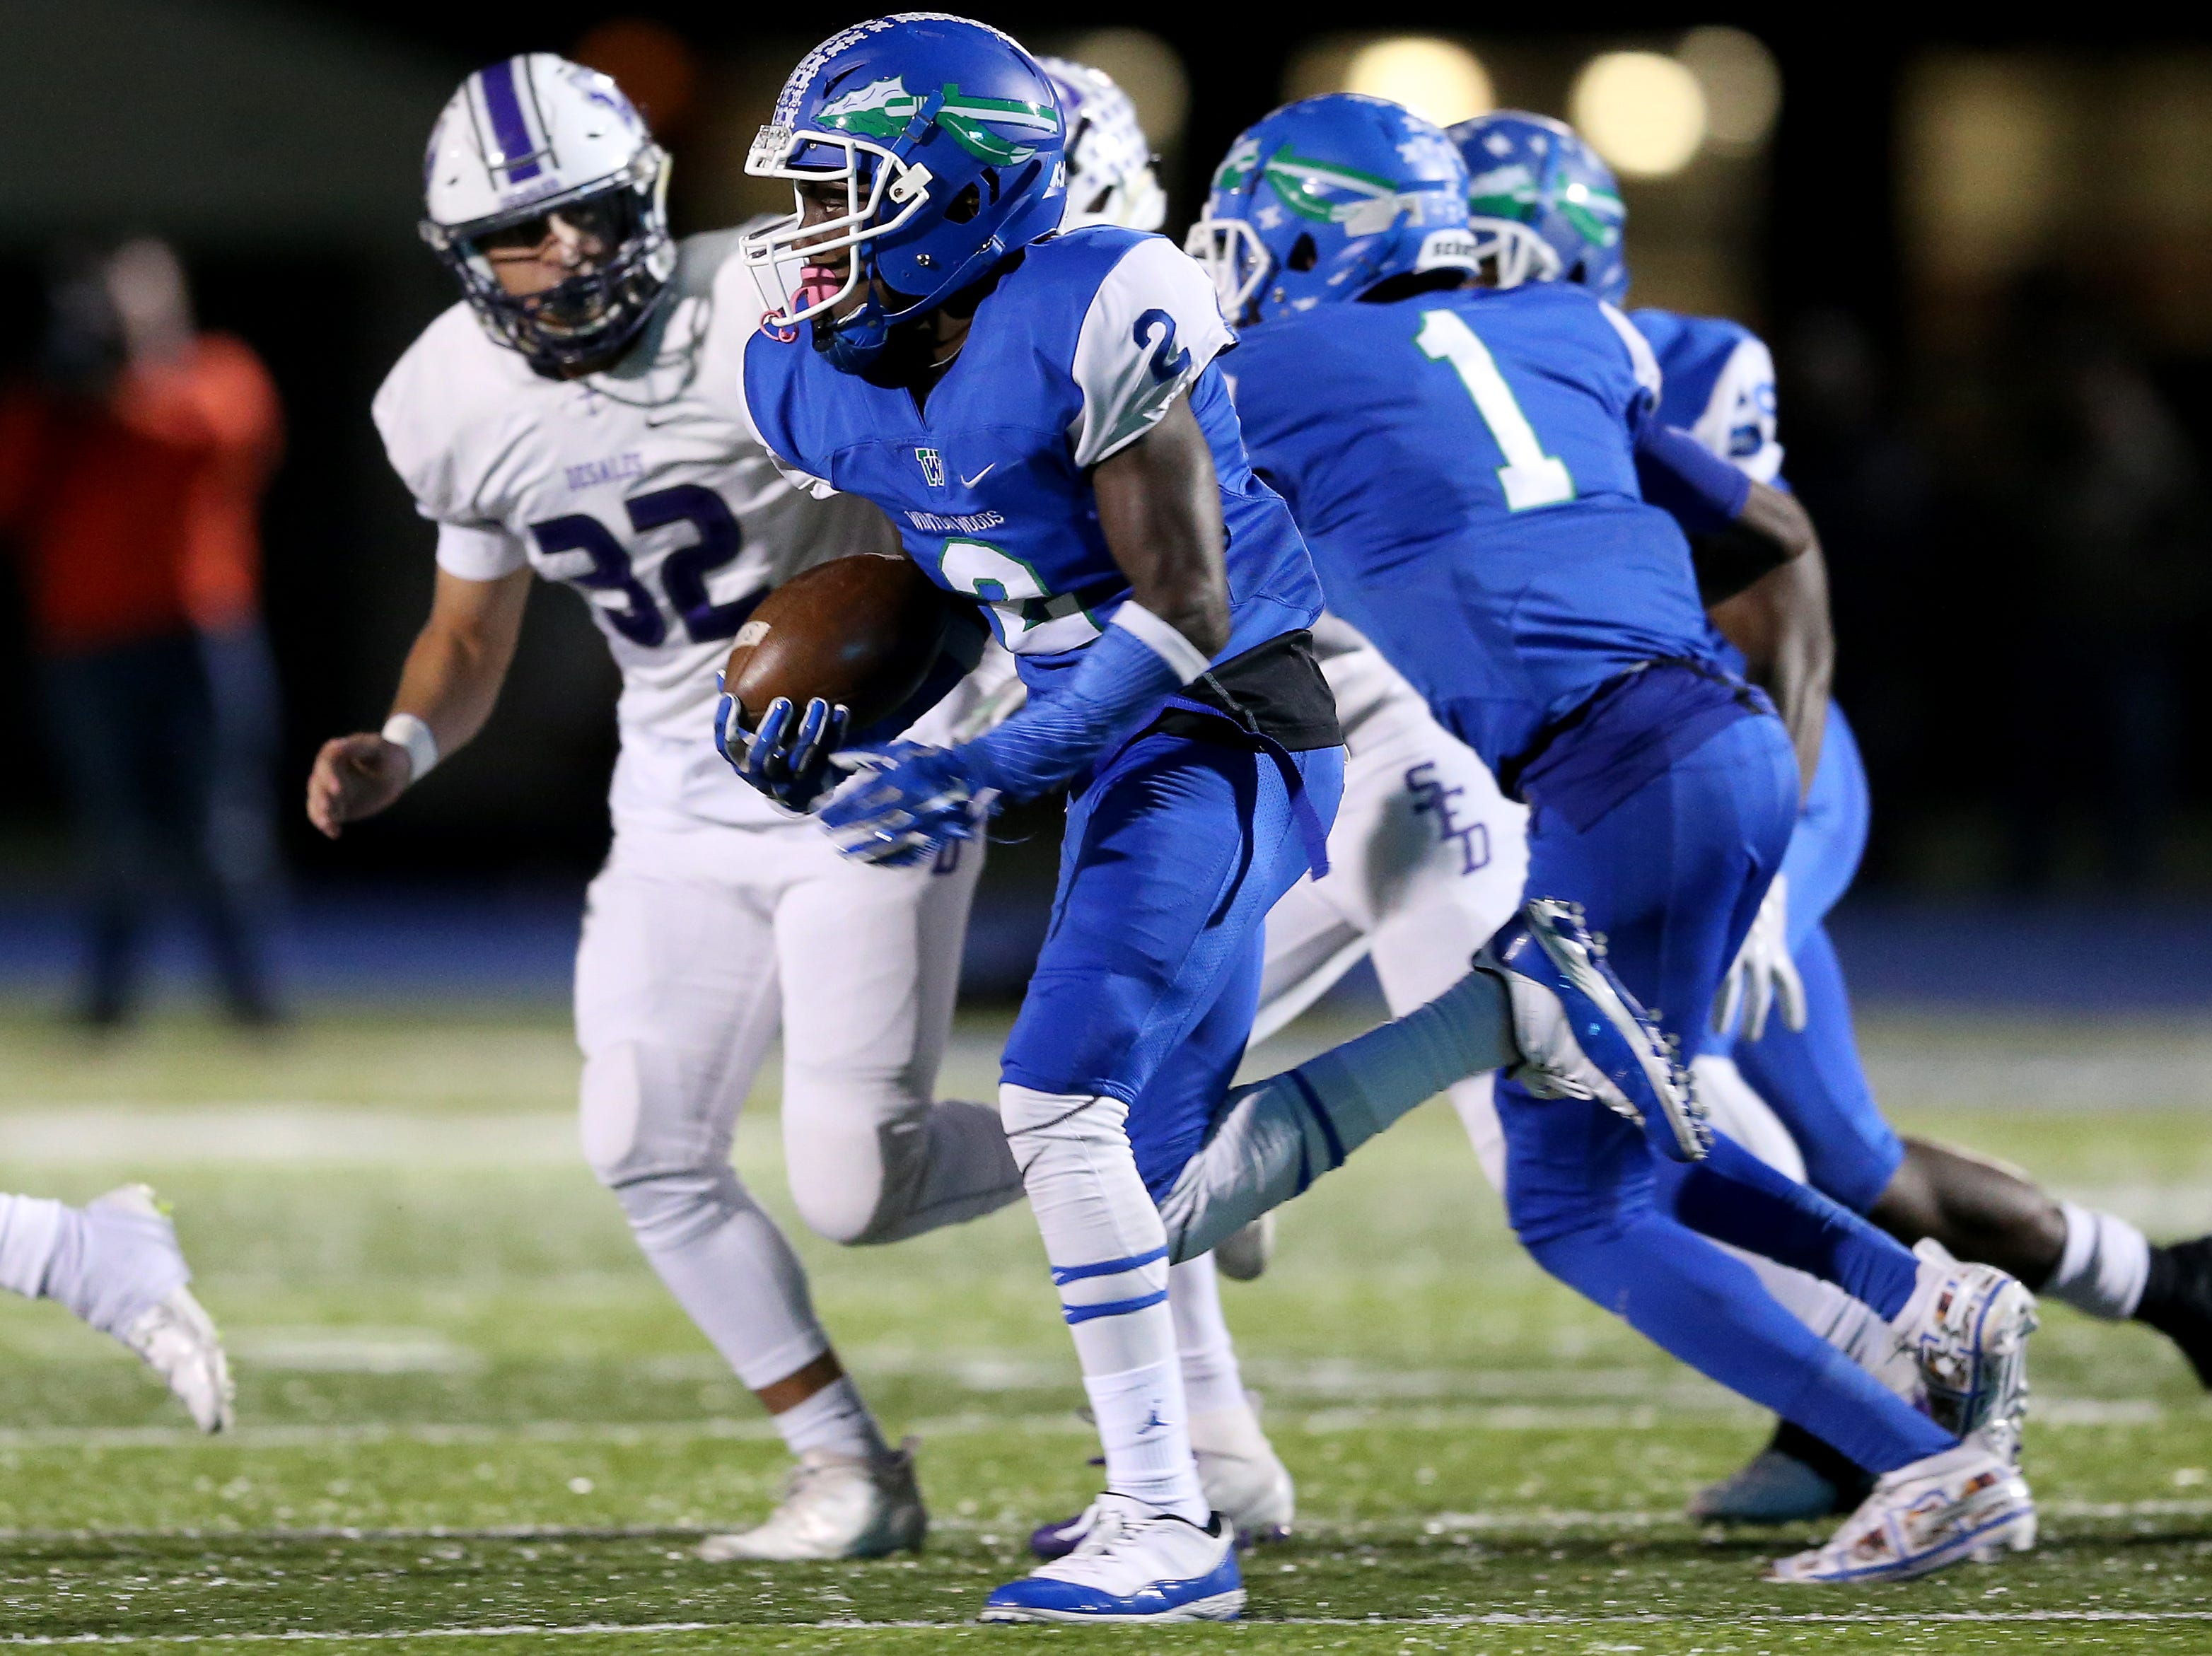 Winton Woods Warriors wide receiver Rae'Quan Prince (2) returns a kick, which called back on a penalty, in the first quarter during a high school football game between St. Francis de Sales and Winton Woods, Friday, Oct. 19, 2018, at Winton Woods High School in Forest Park, Ohio.